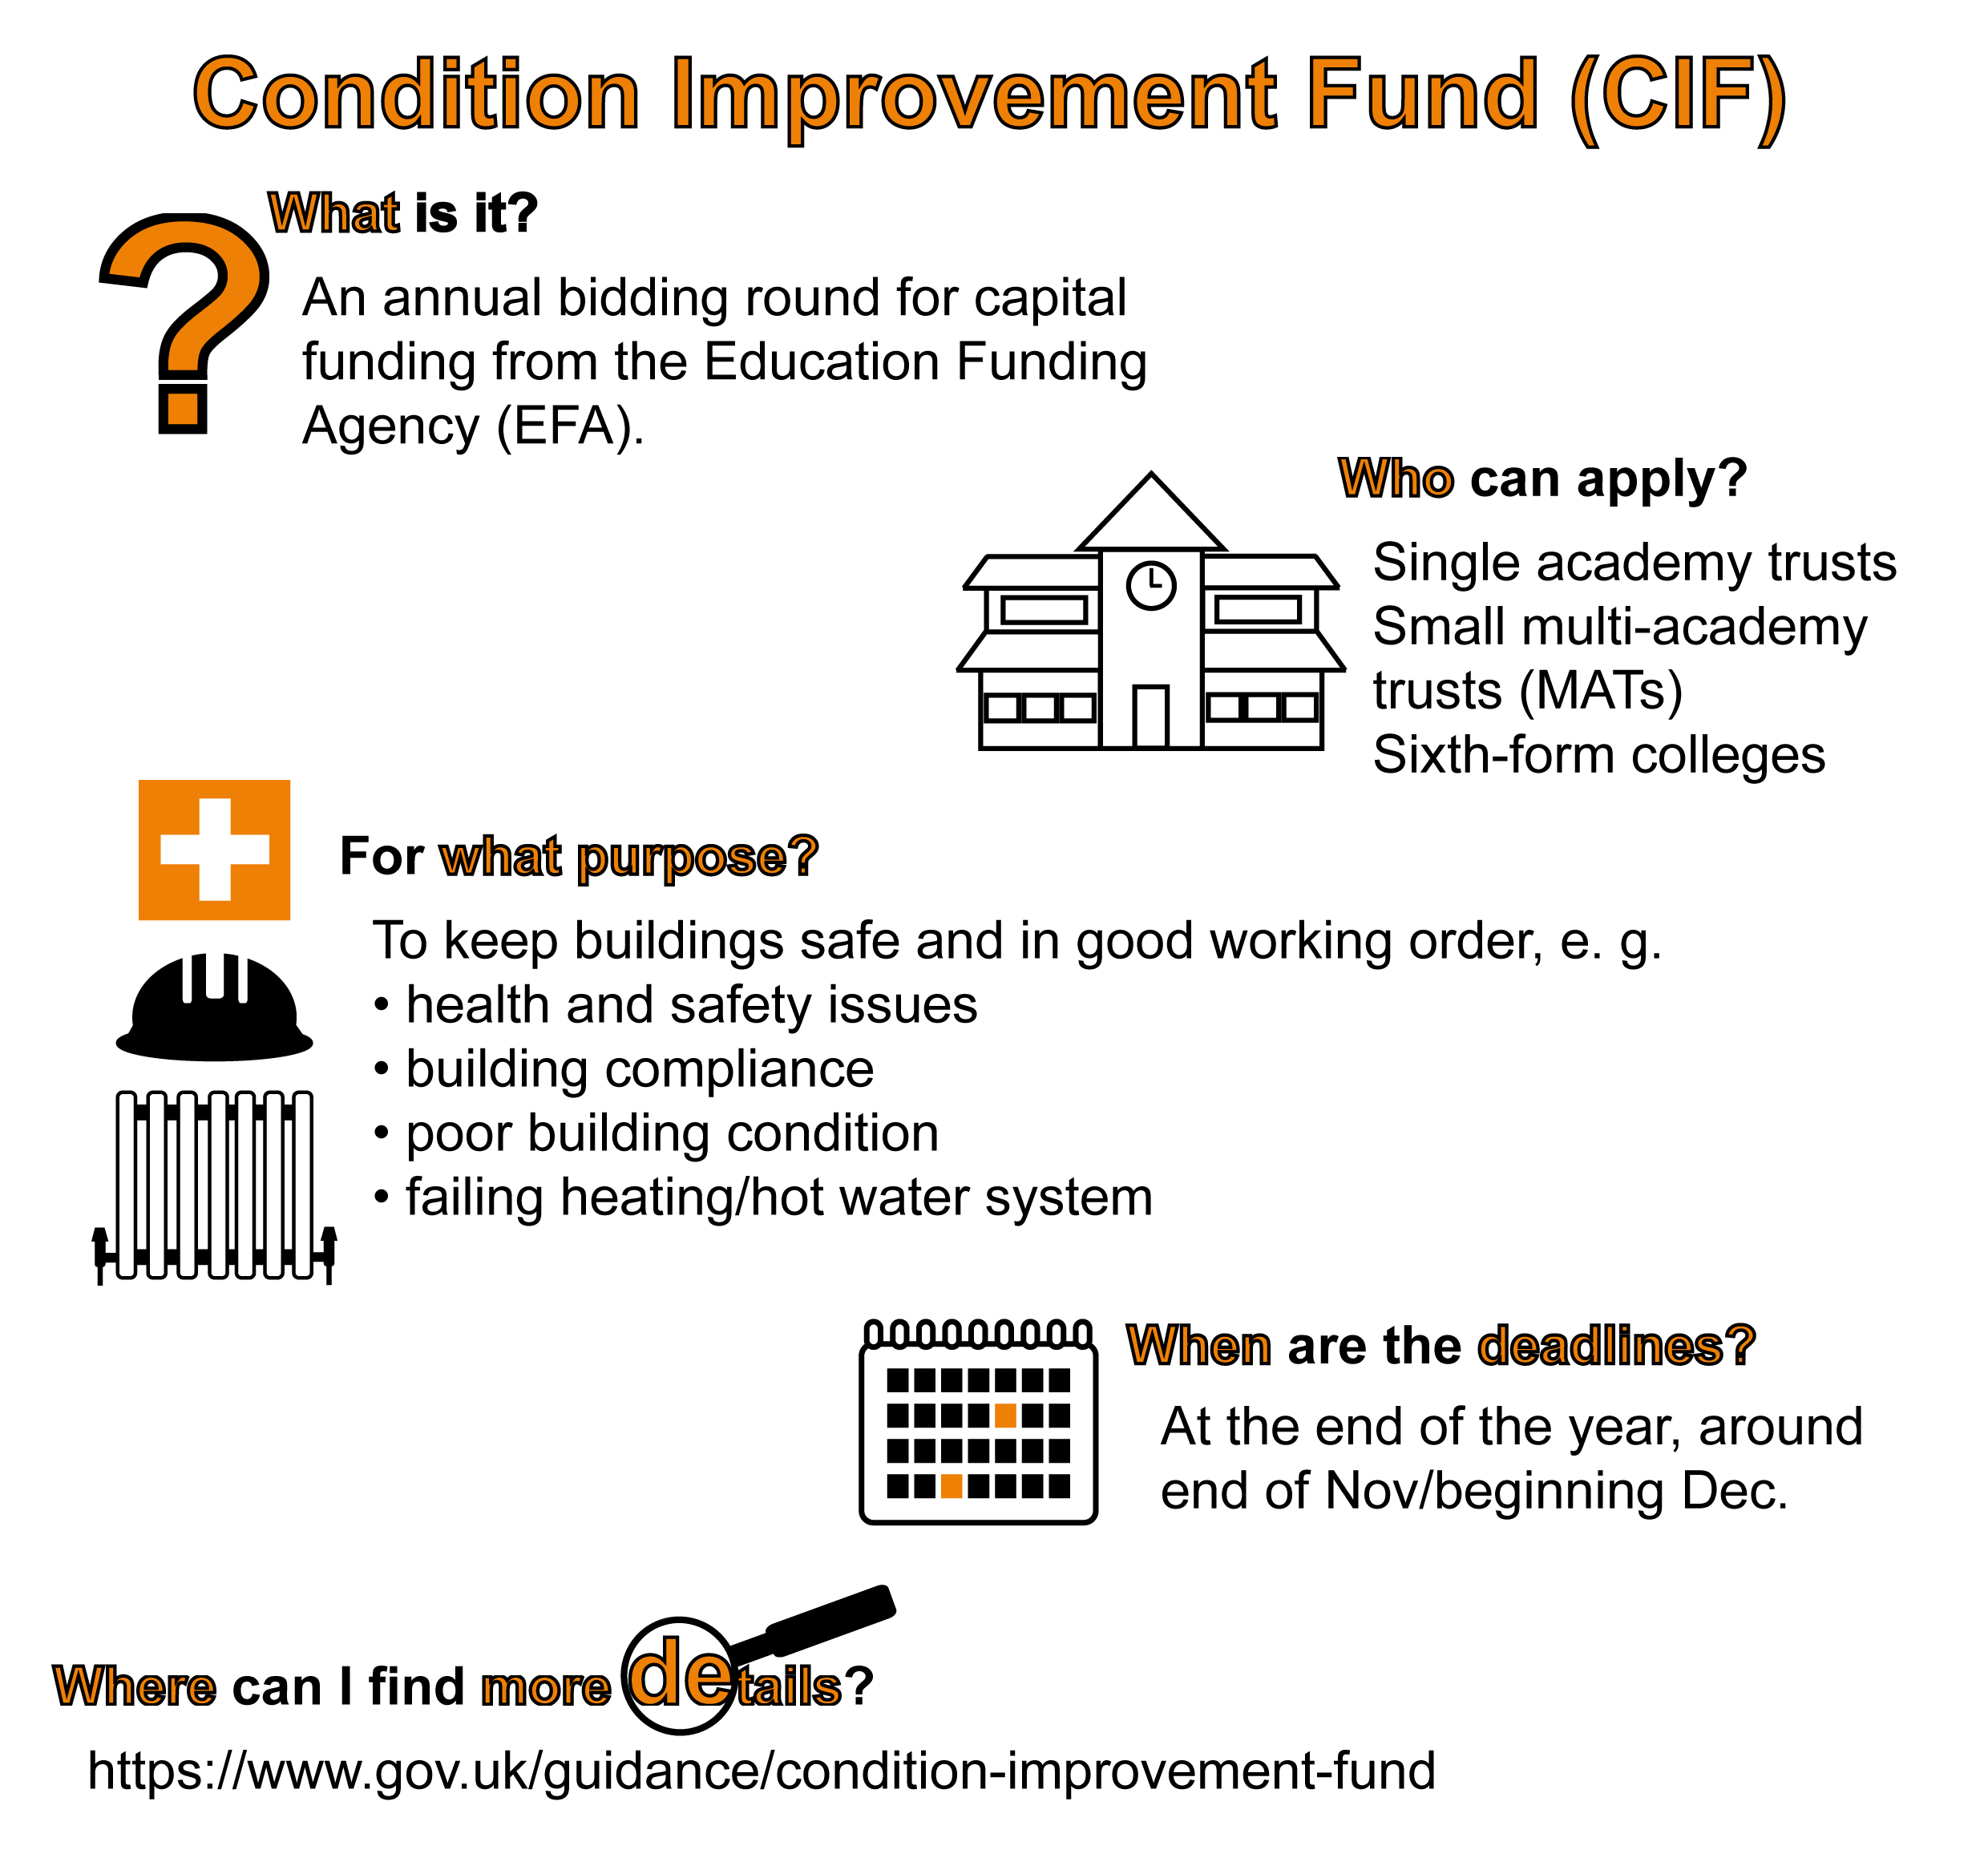 The Condition Improvement Fund is an annual bidding round available for school refurbishment projects.